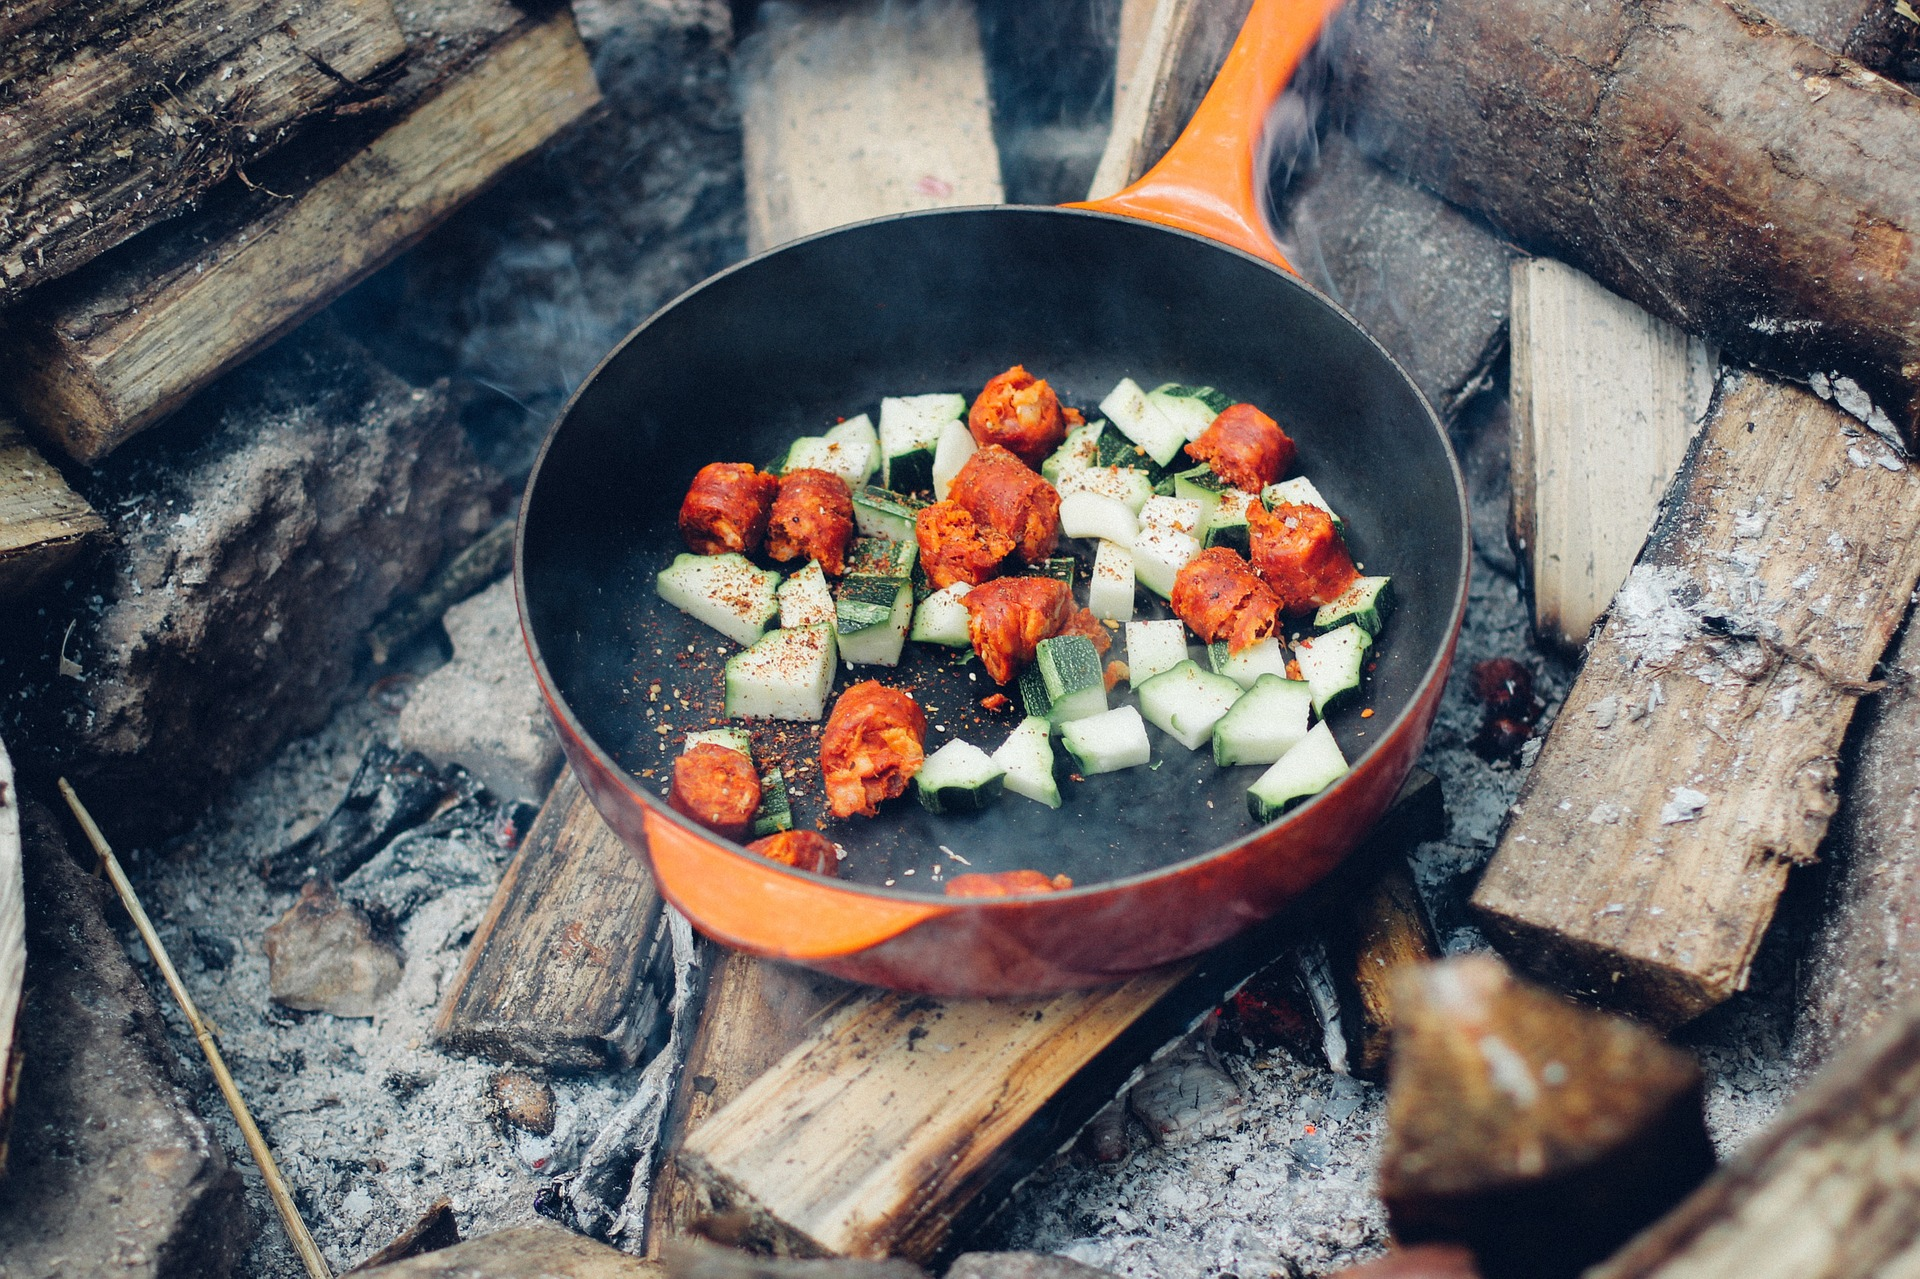 Top 5 Camping Recipes To Have an Absolute Blast